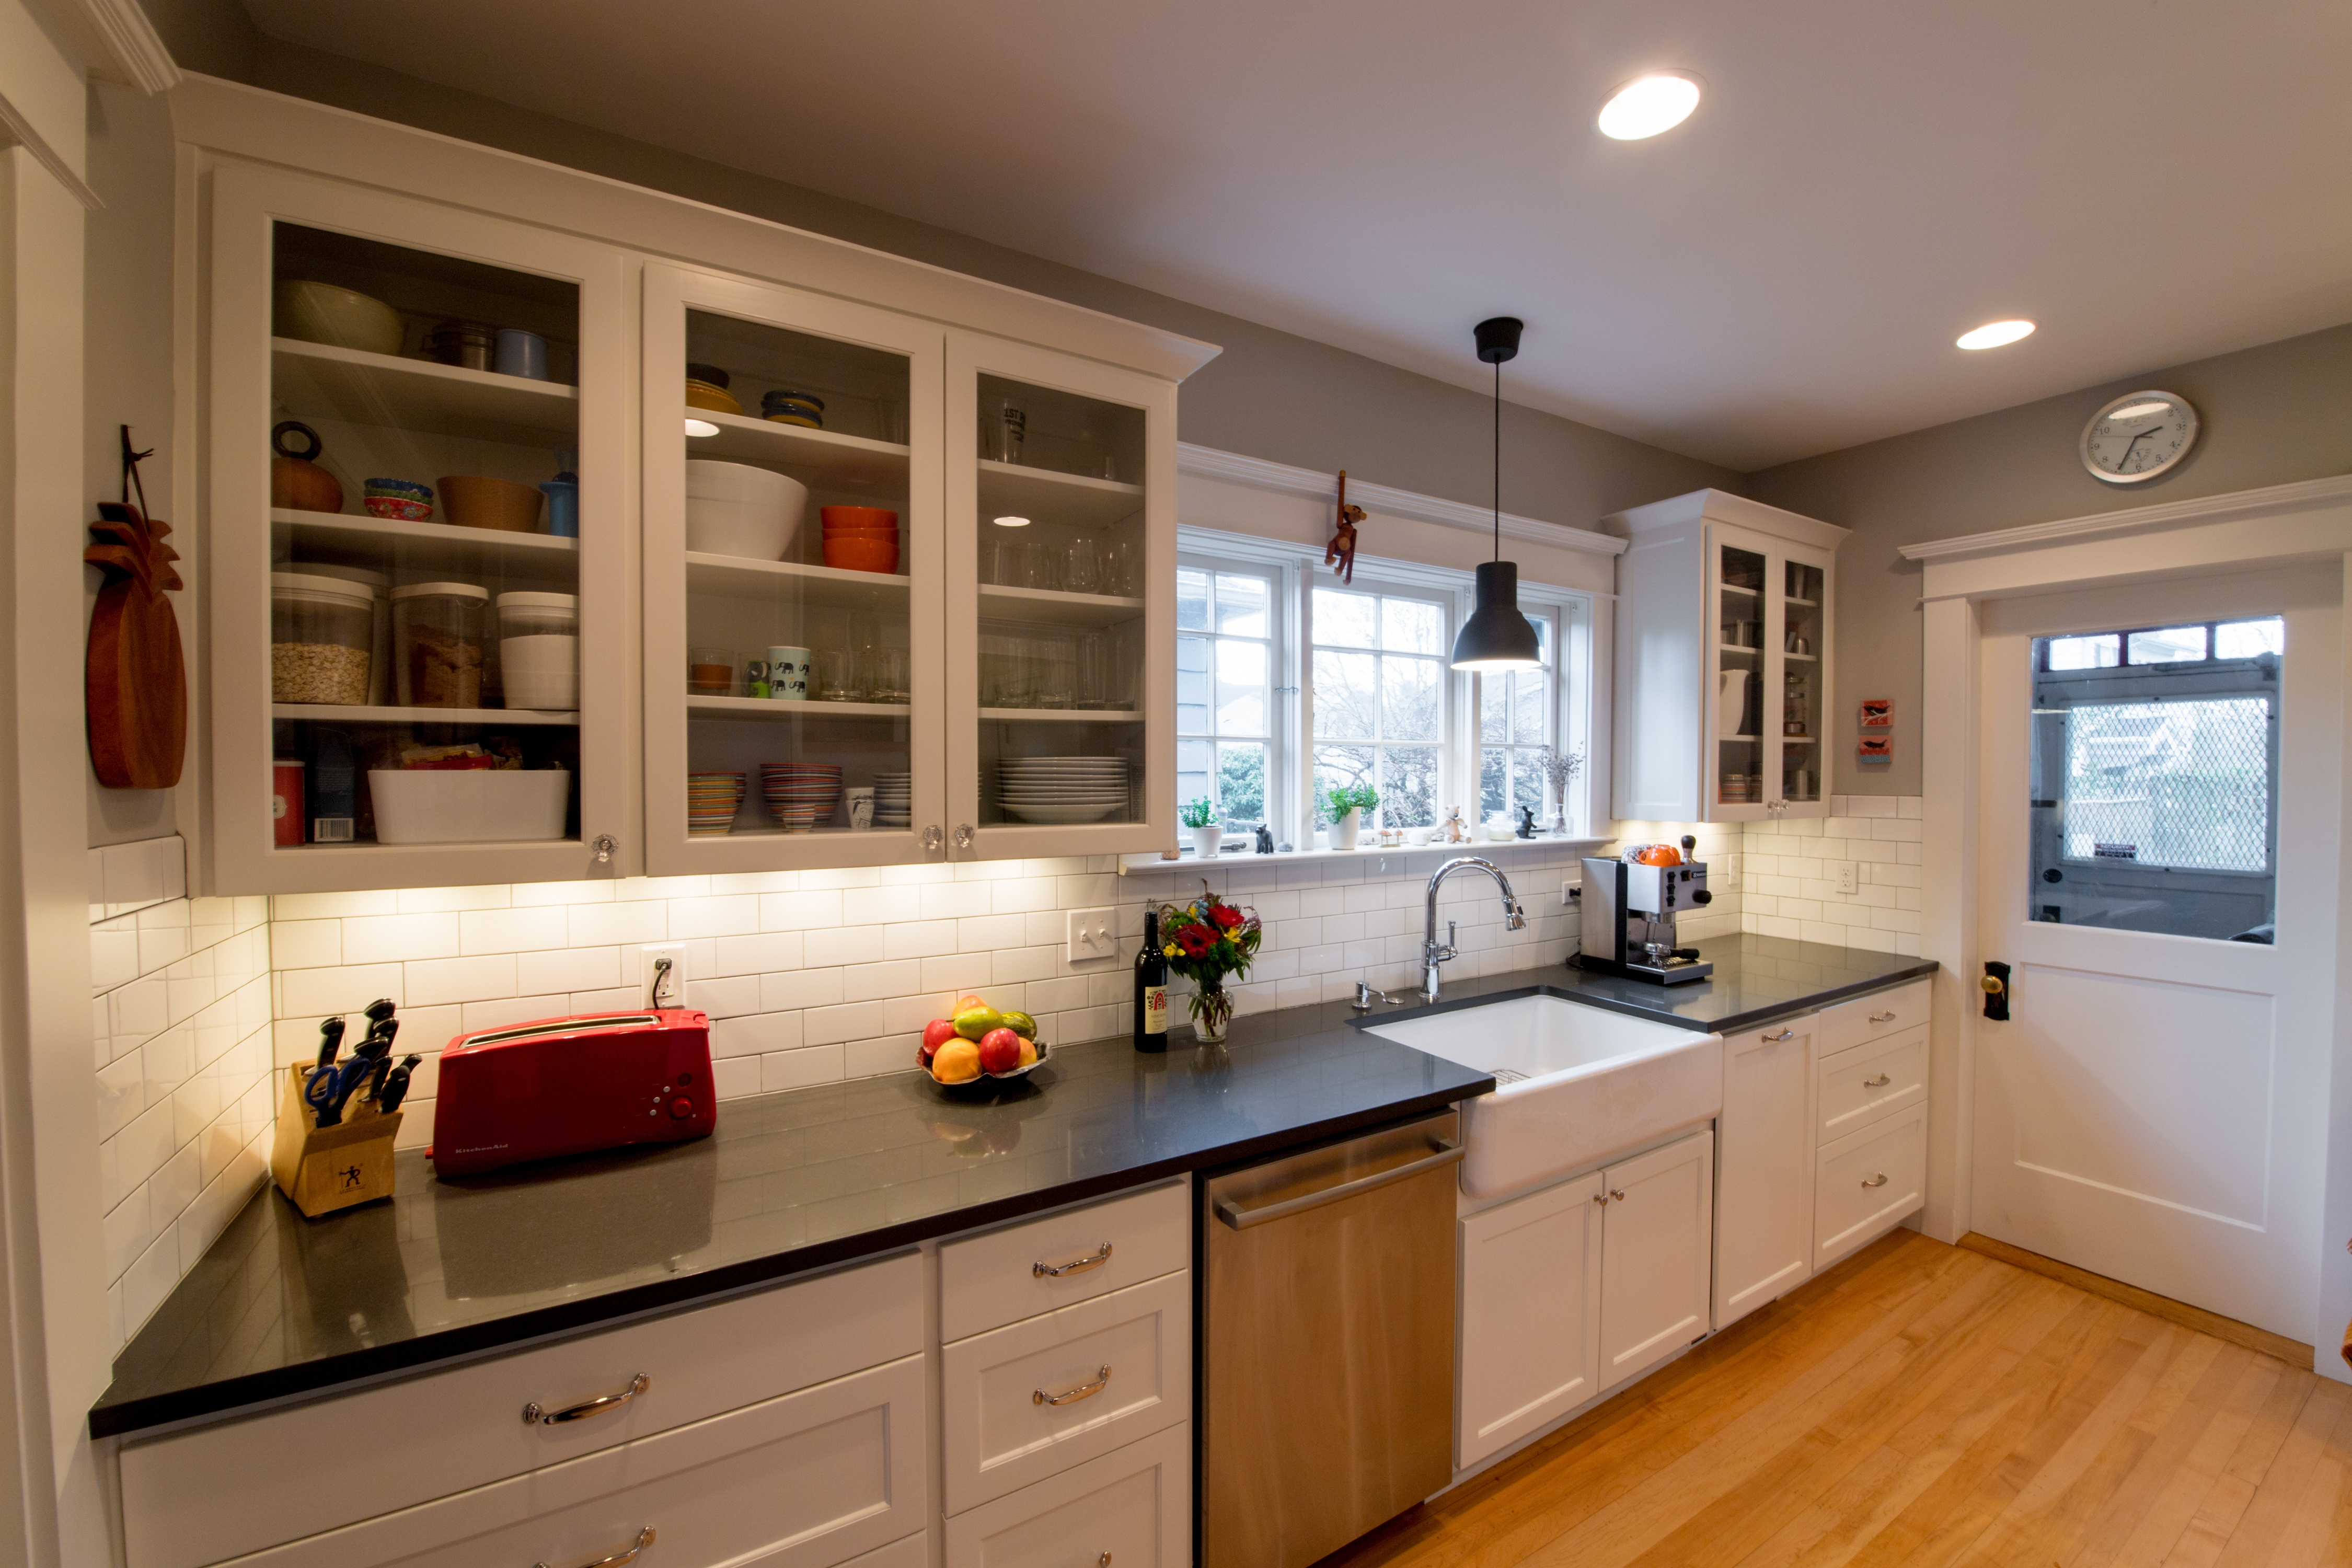 Five Kitchen Remodel Design Ideas For Your Home